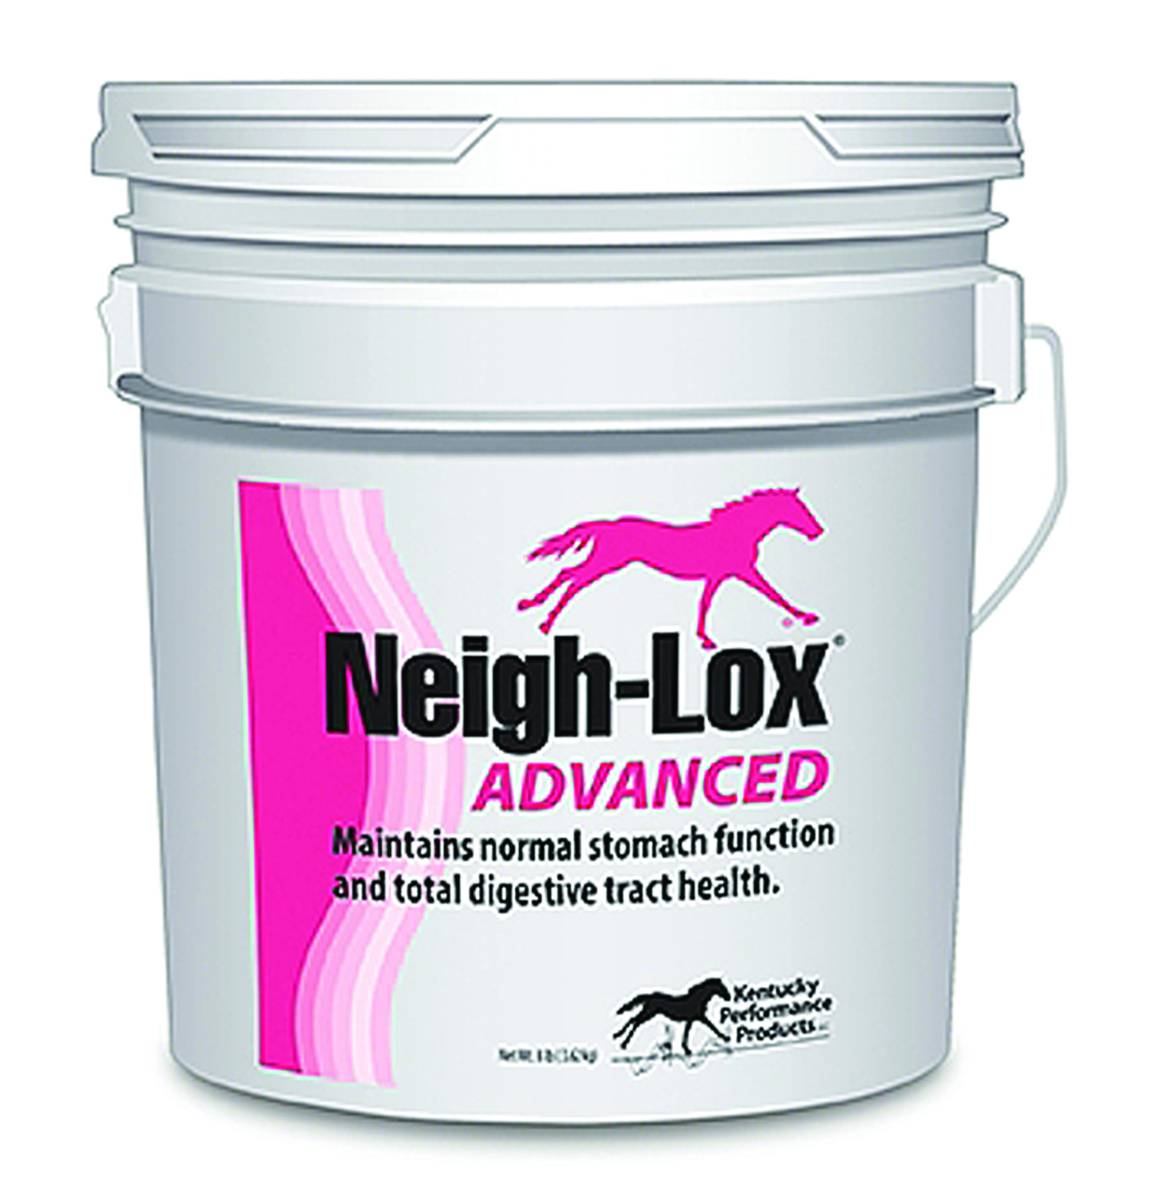 Kentucky Performance Products Neigh-Lox Advanced